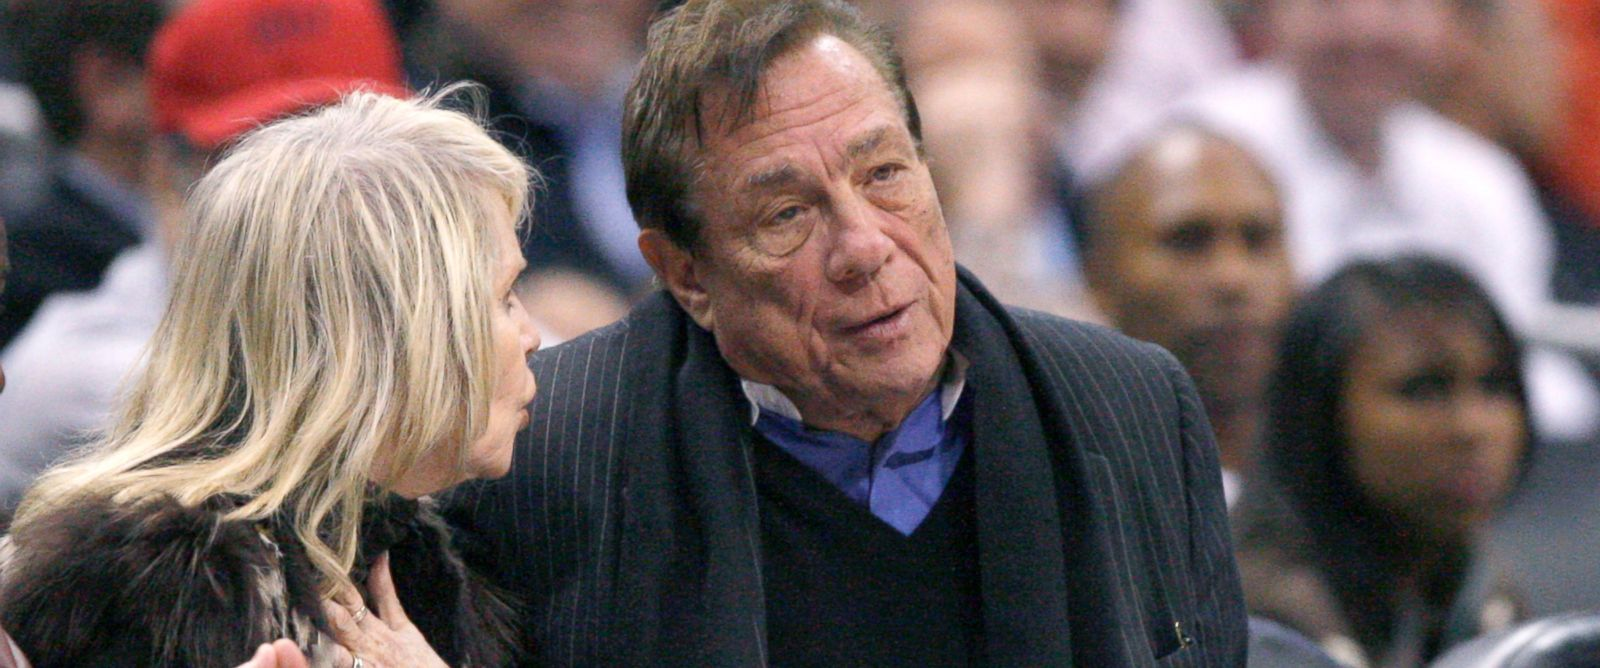 PHOTO: Los Angeles Clippers owner Donald Sterling sits with a companion as he watches the team play New York Knicks in Los Angeles, Feb. 11, 2009.